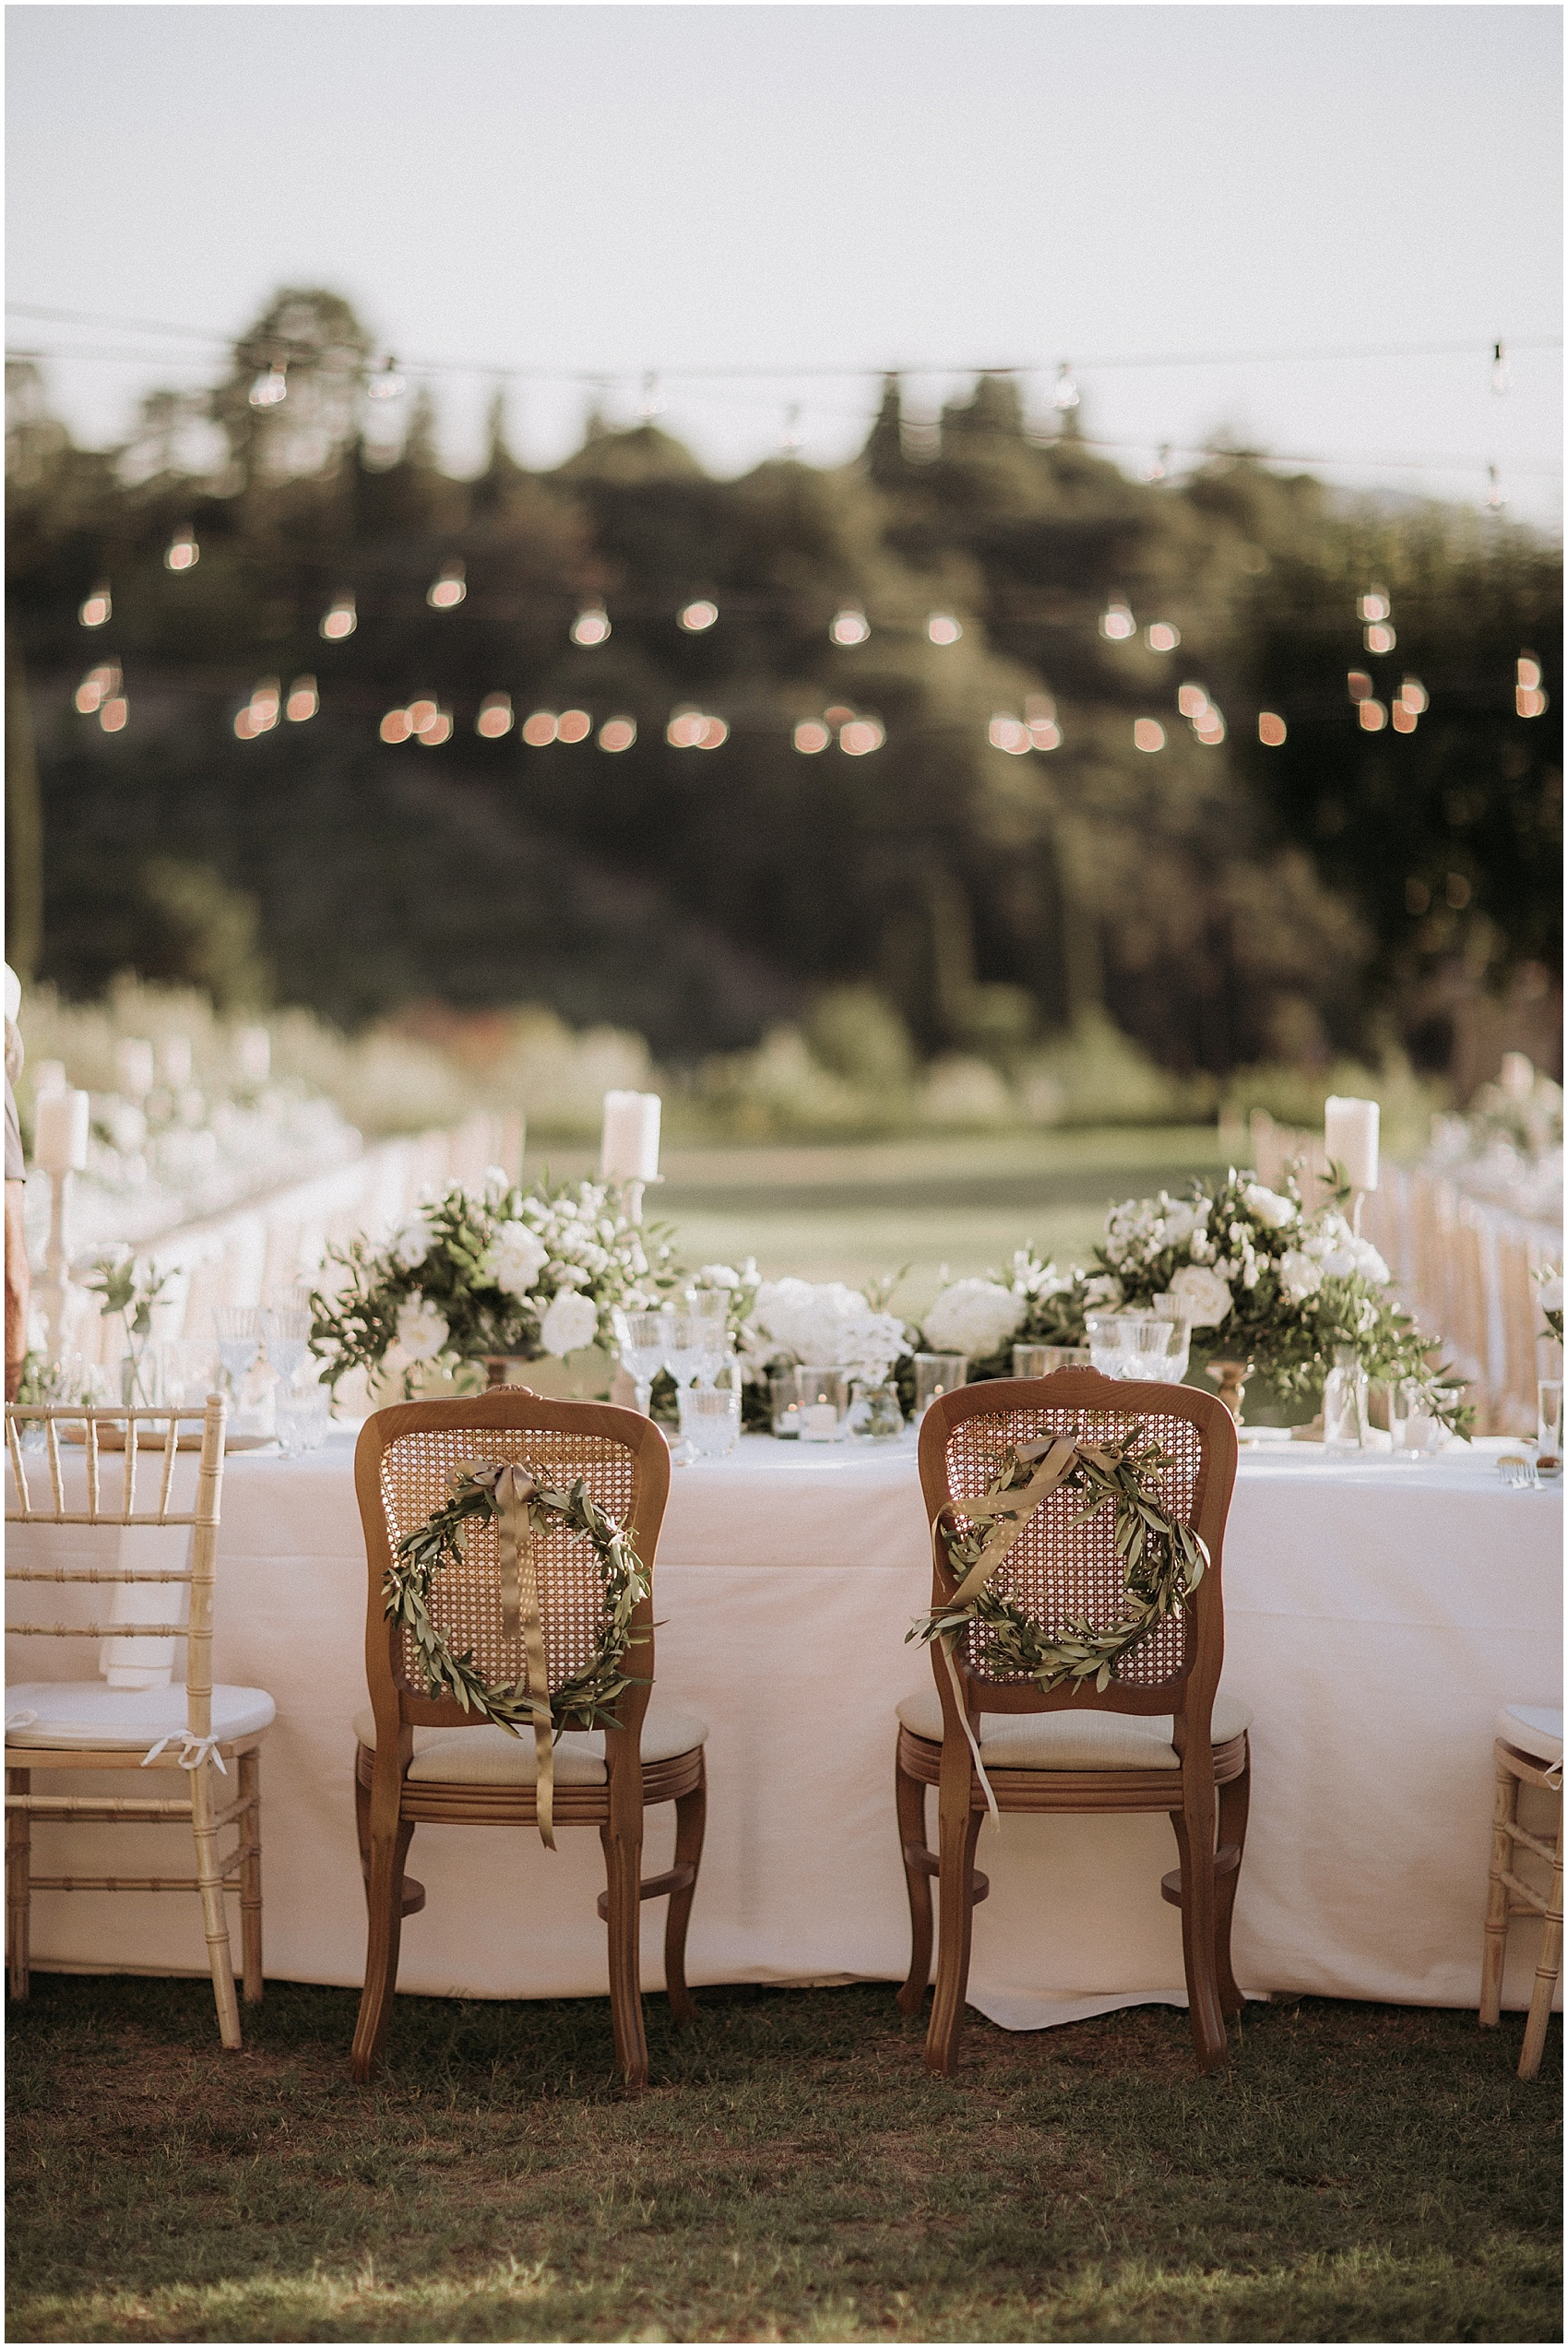 Wedding at Villa Medicea di Lilliano, Firenze